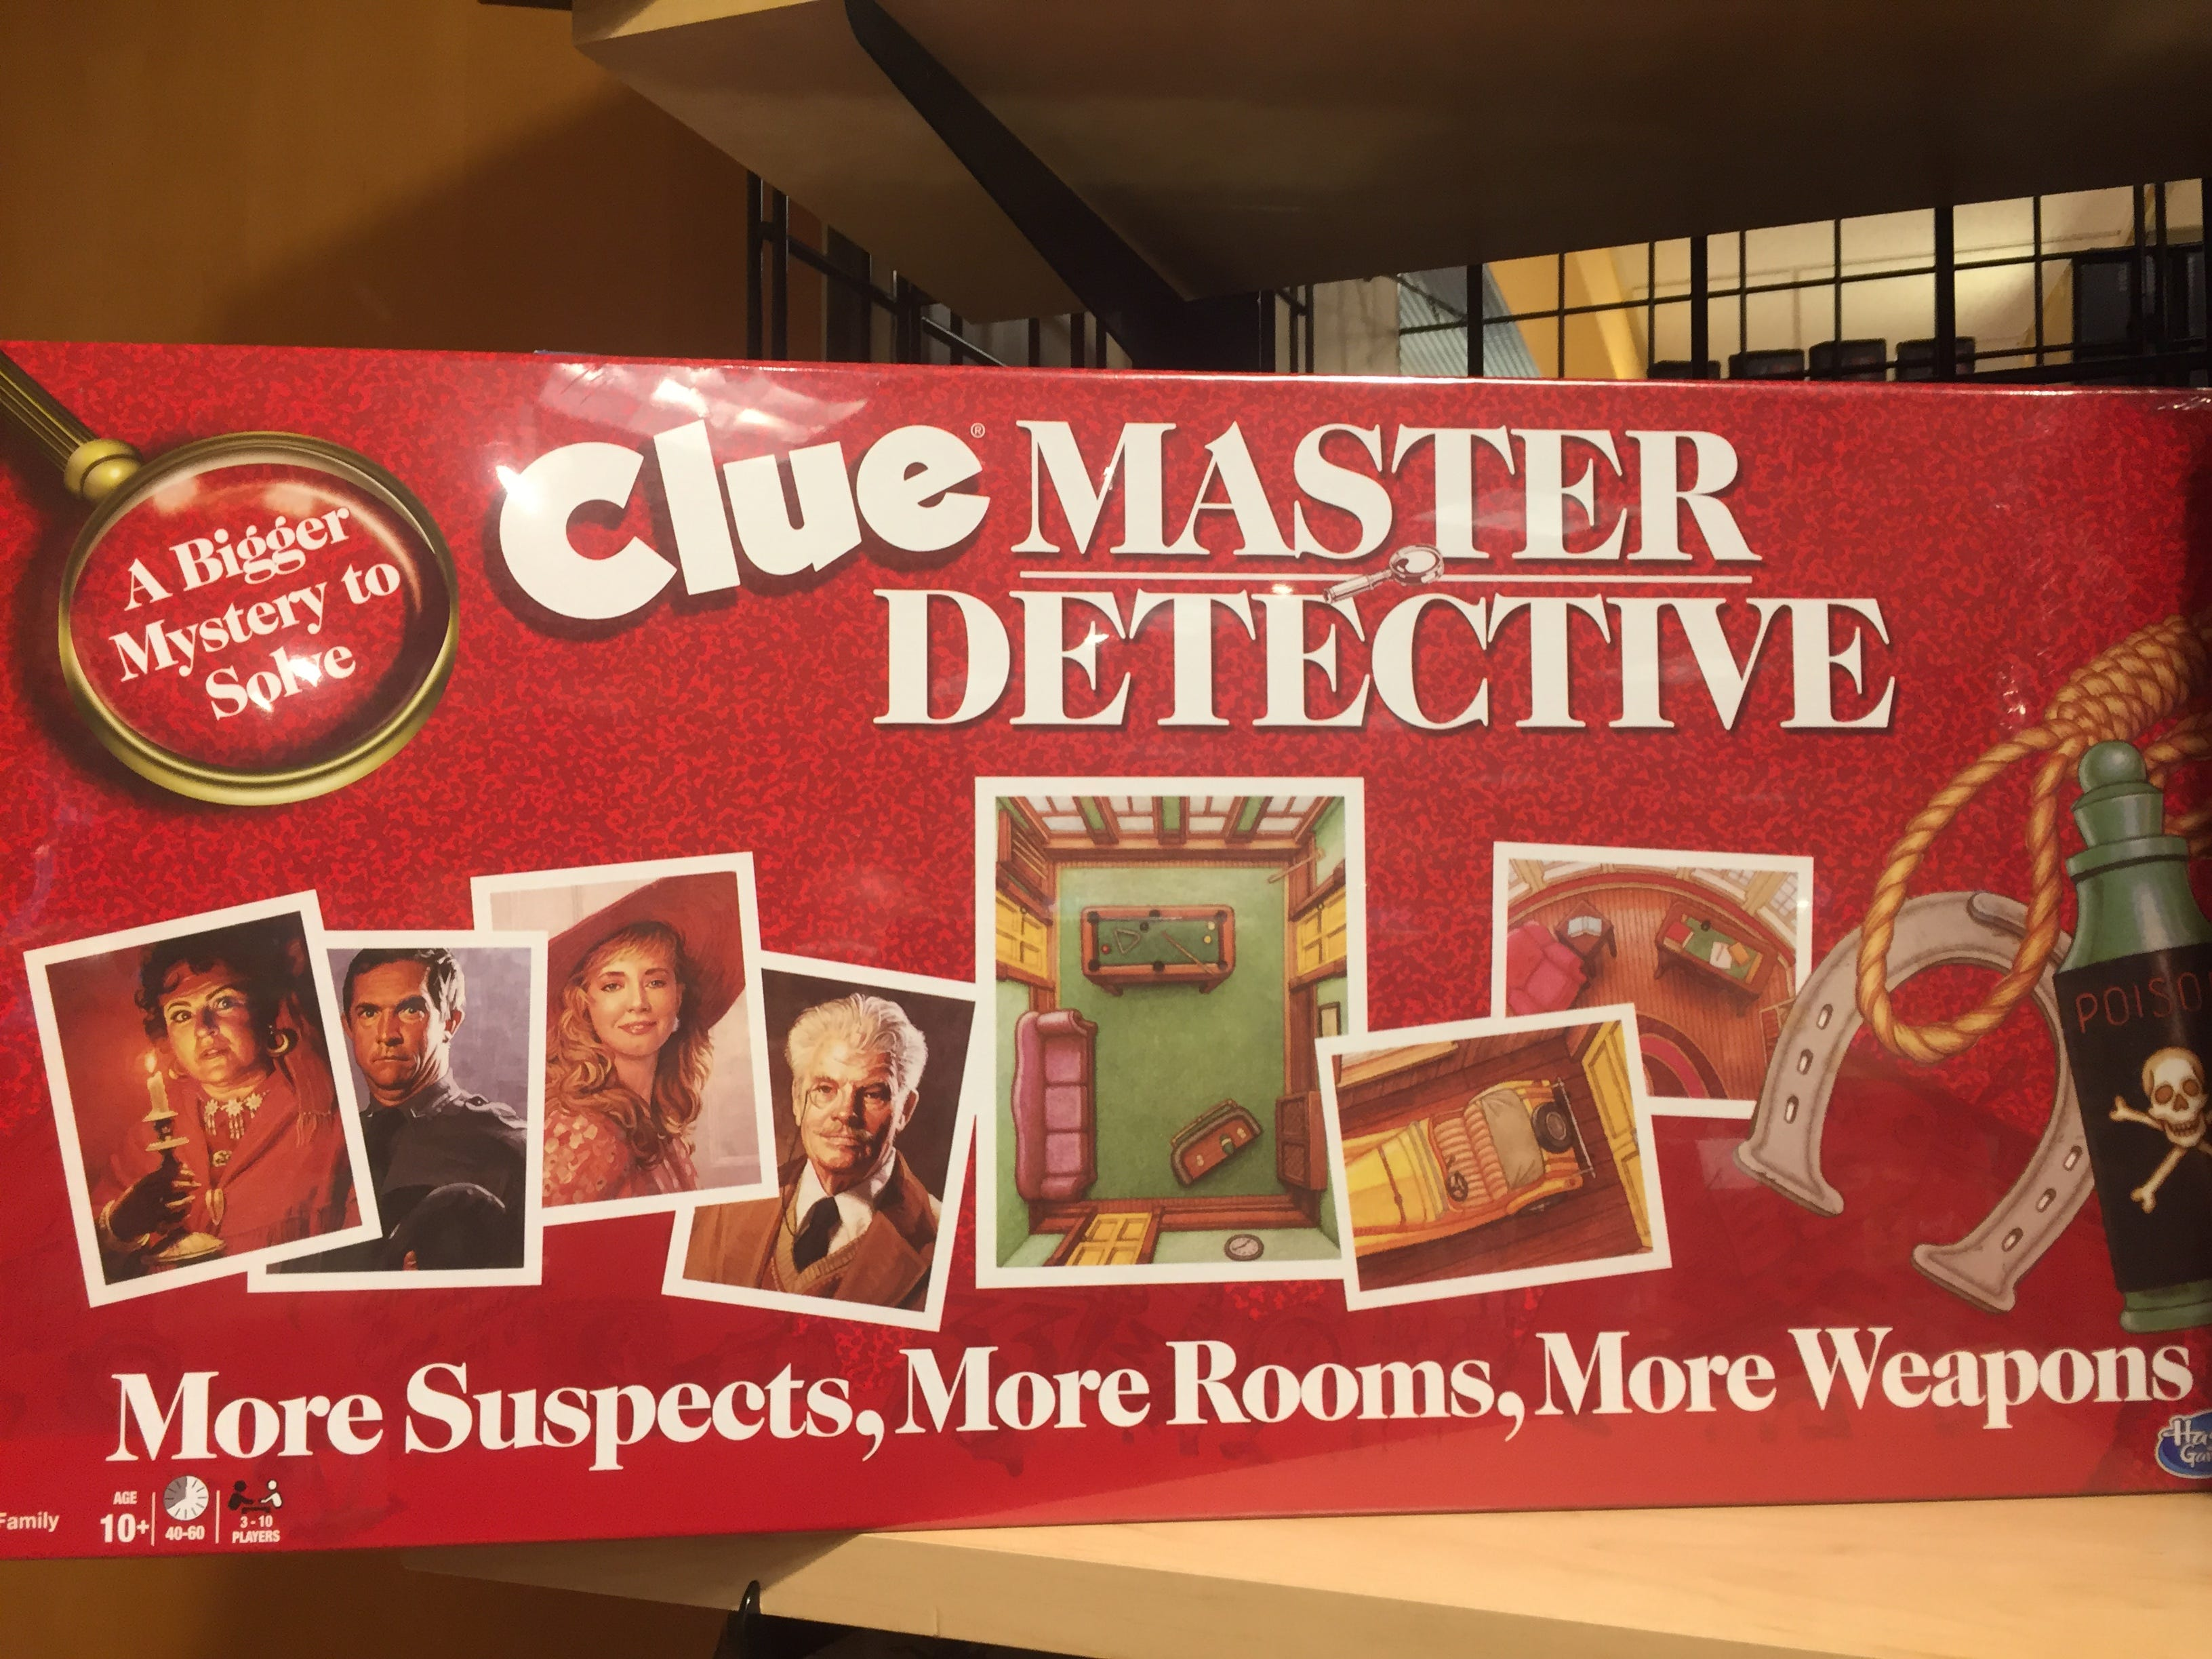 Board Game Barrister Gordon Lugauer said his customers are excited that Clue Master Detective is available for the holiday season. He said this is the first time the game has been in print for years.